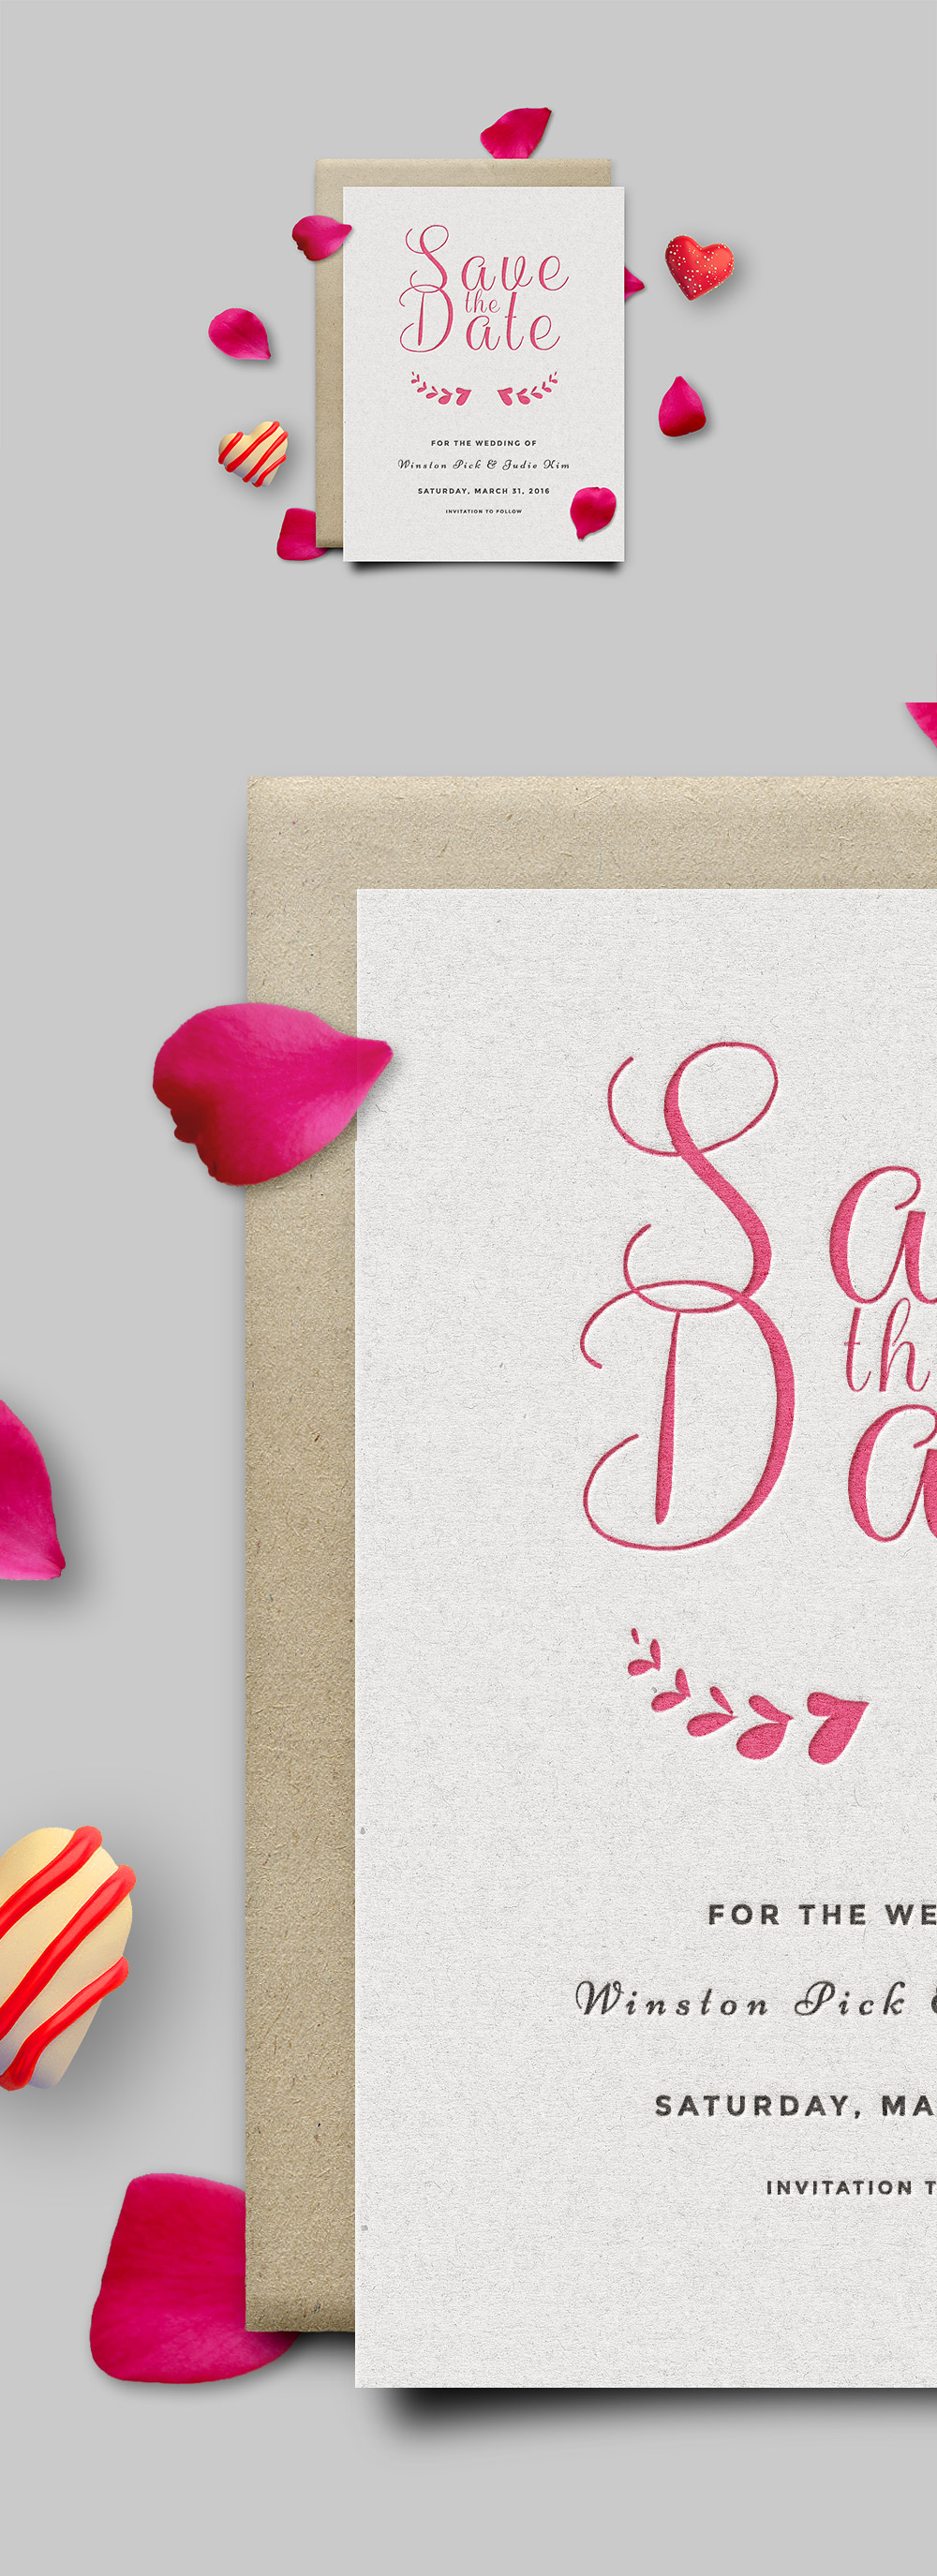 save the date invitation card mockup psd graphicsfuel